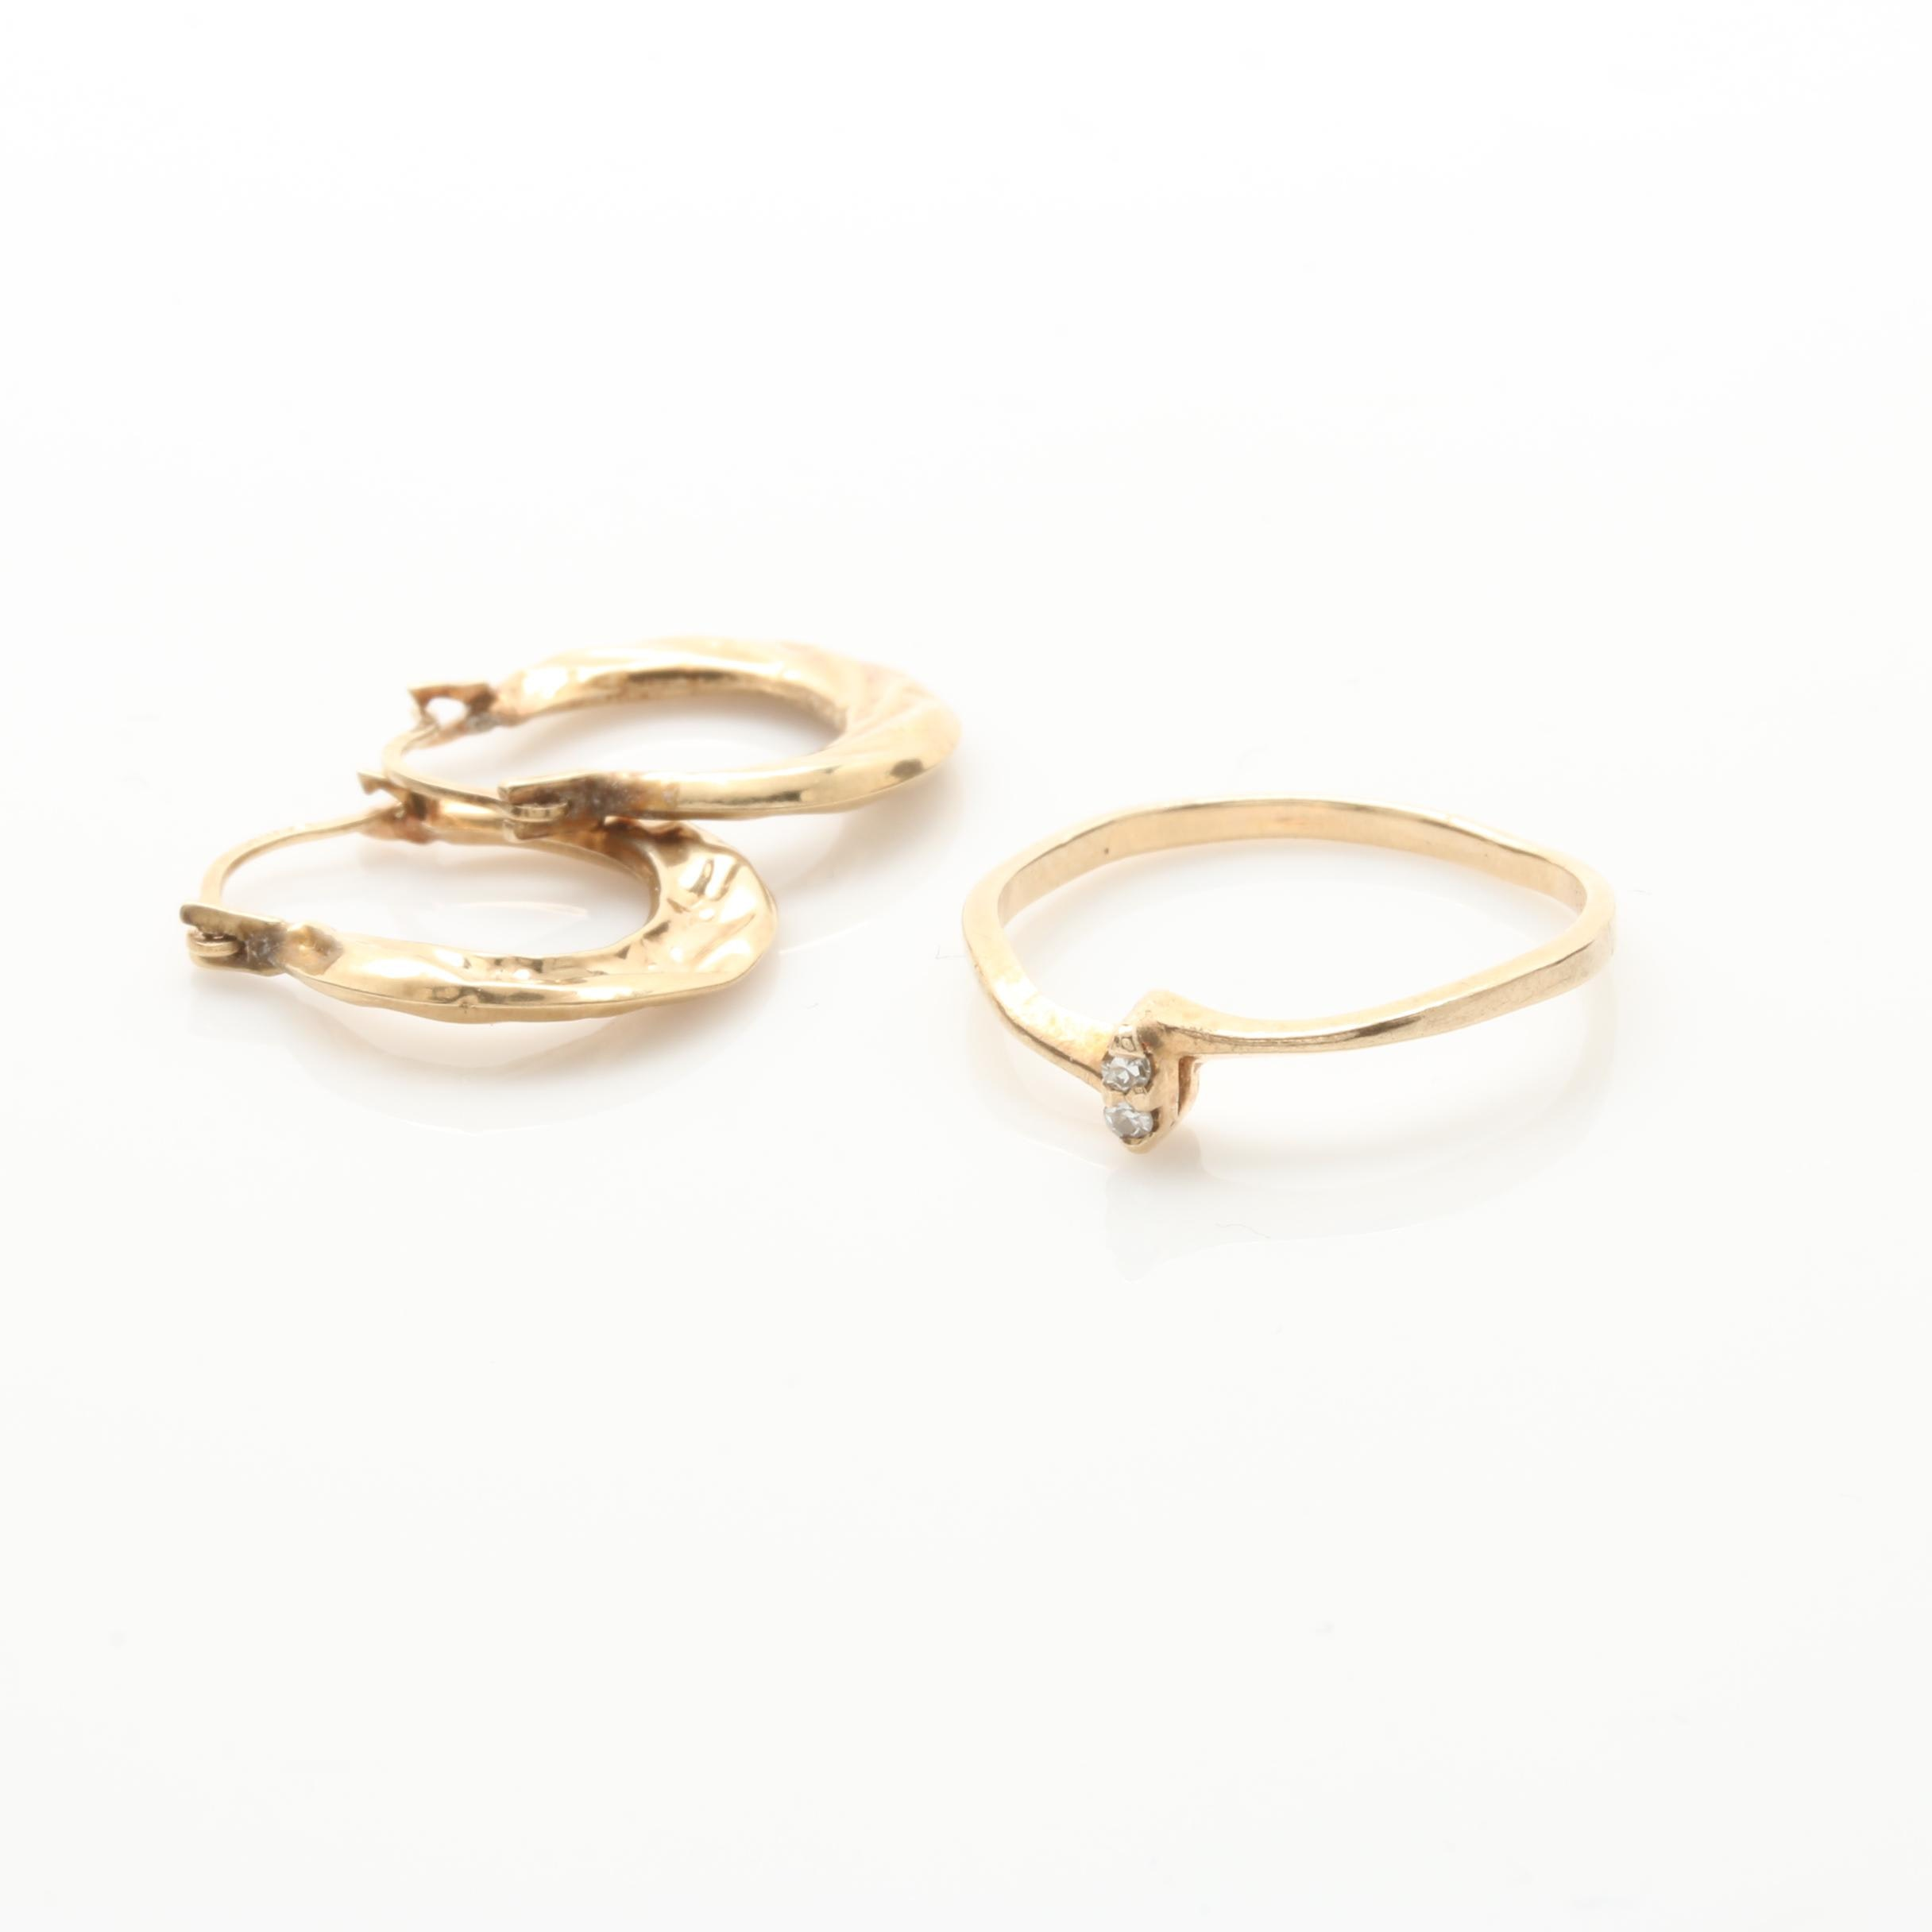 10K Yellow Gold Diamond Ring and Earrings